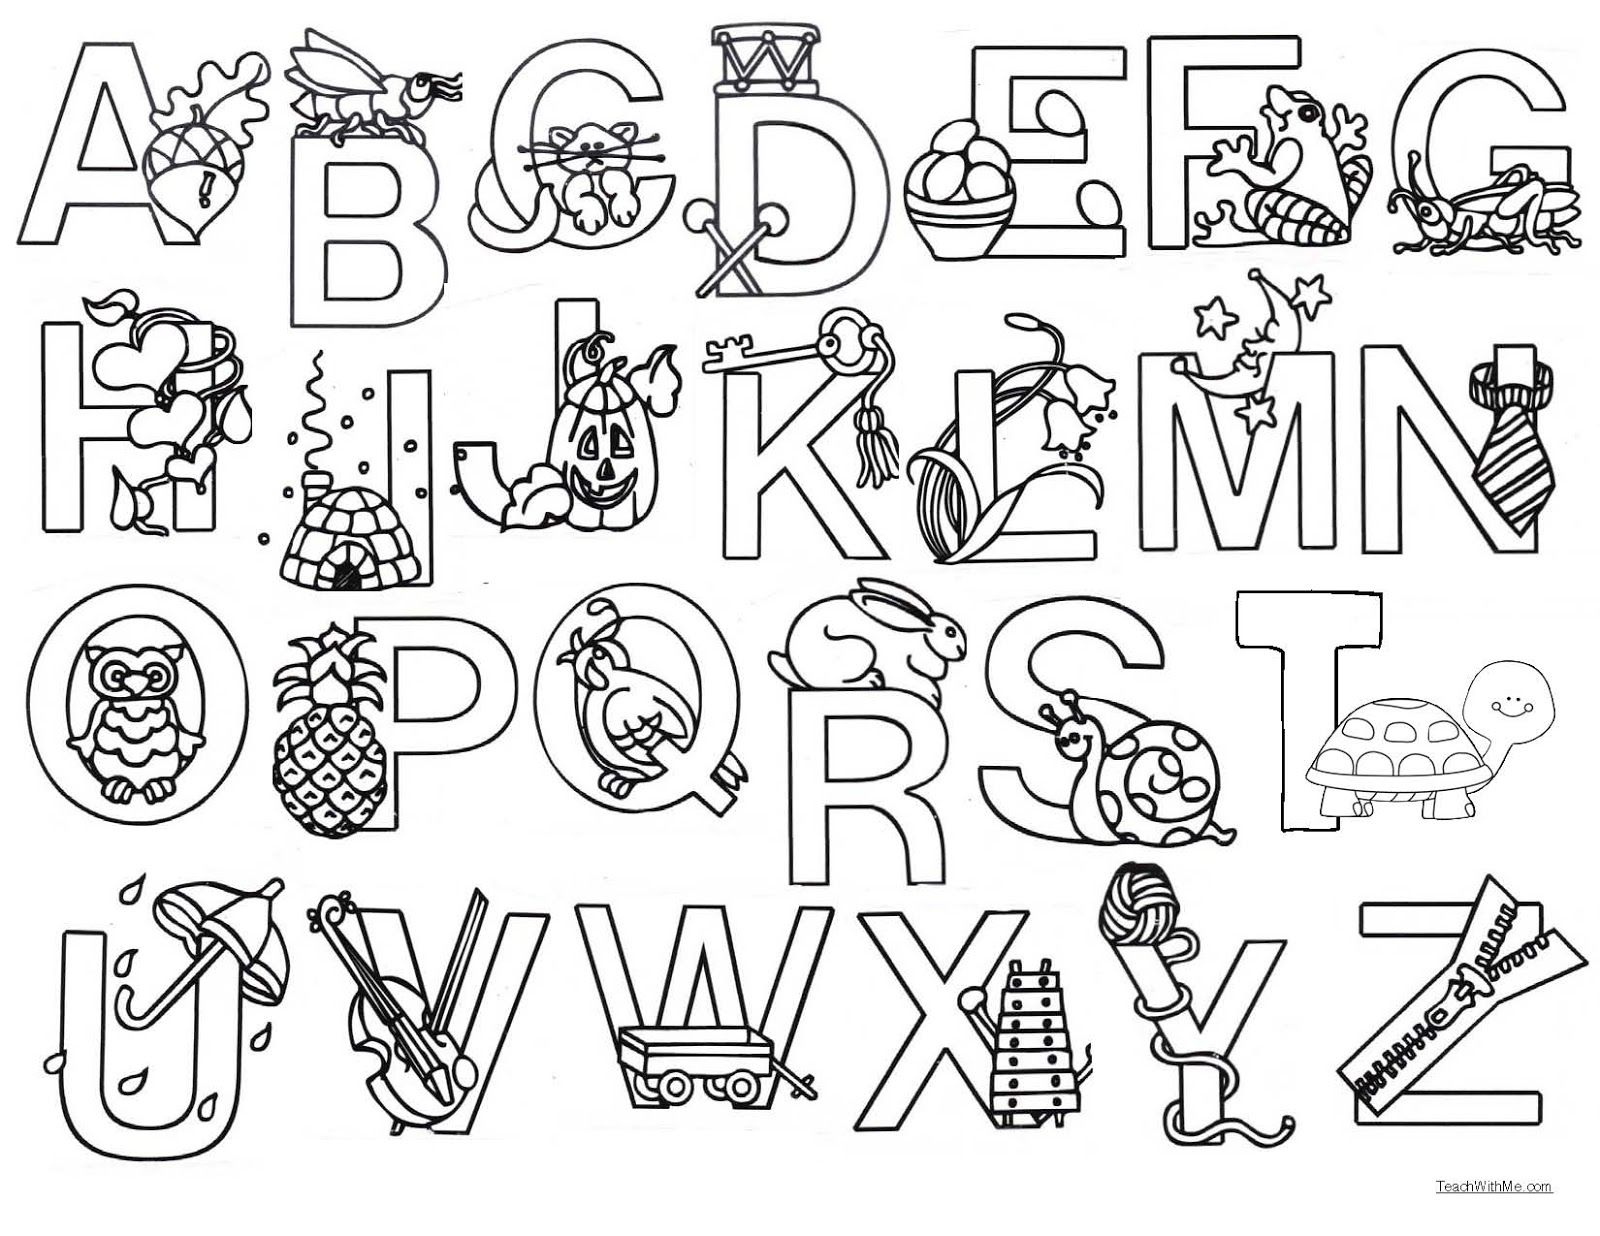 Color Me Alphabet Poster Classroom Freebies Alphabet Coloring Pages Alphabet Coloring Abc Coloring Pages